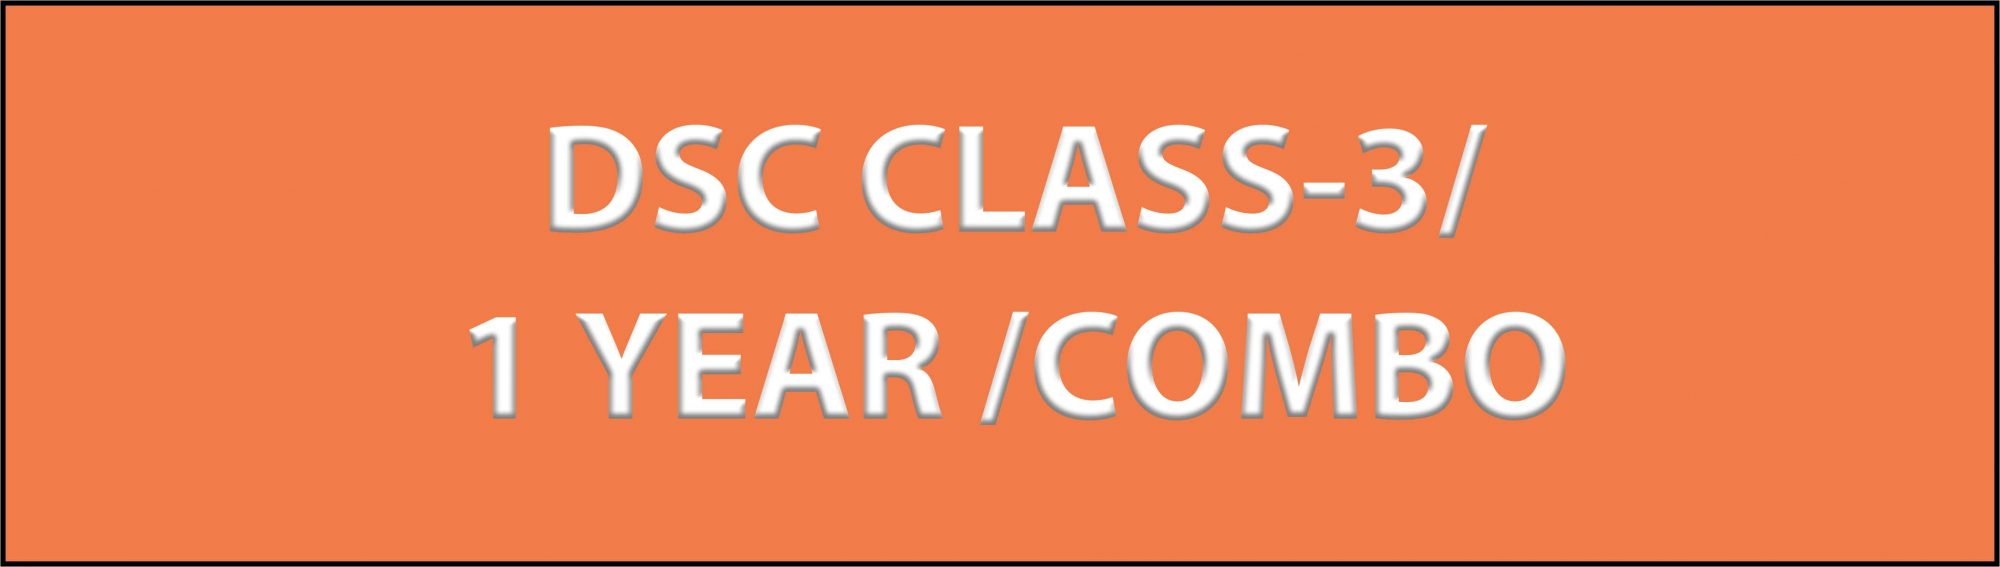 DSC CLASS 3 1 YEAR COMBO scaled